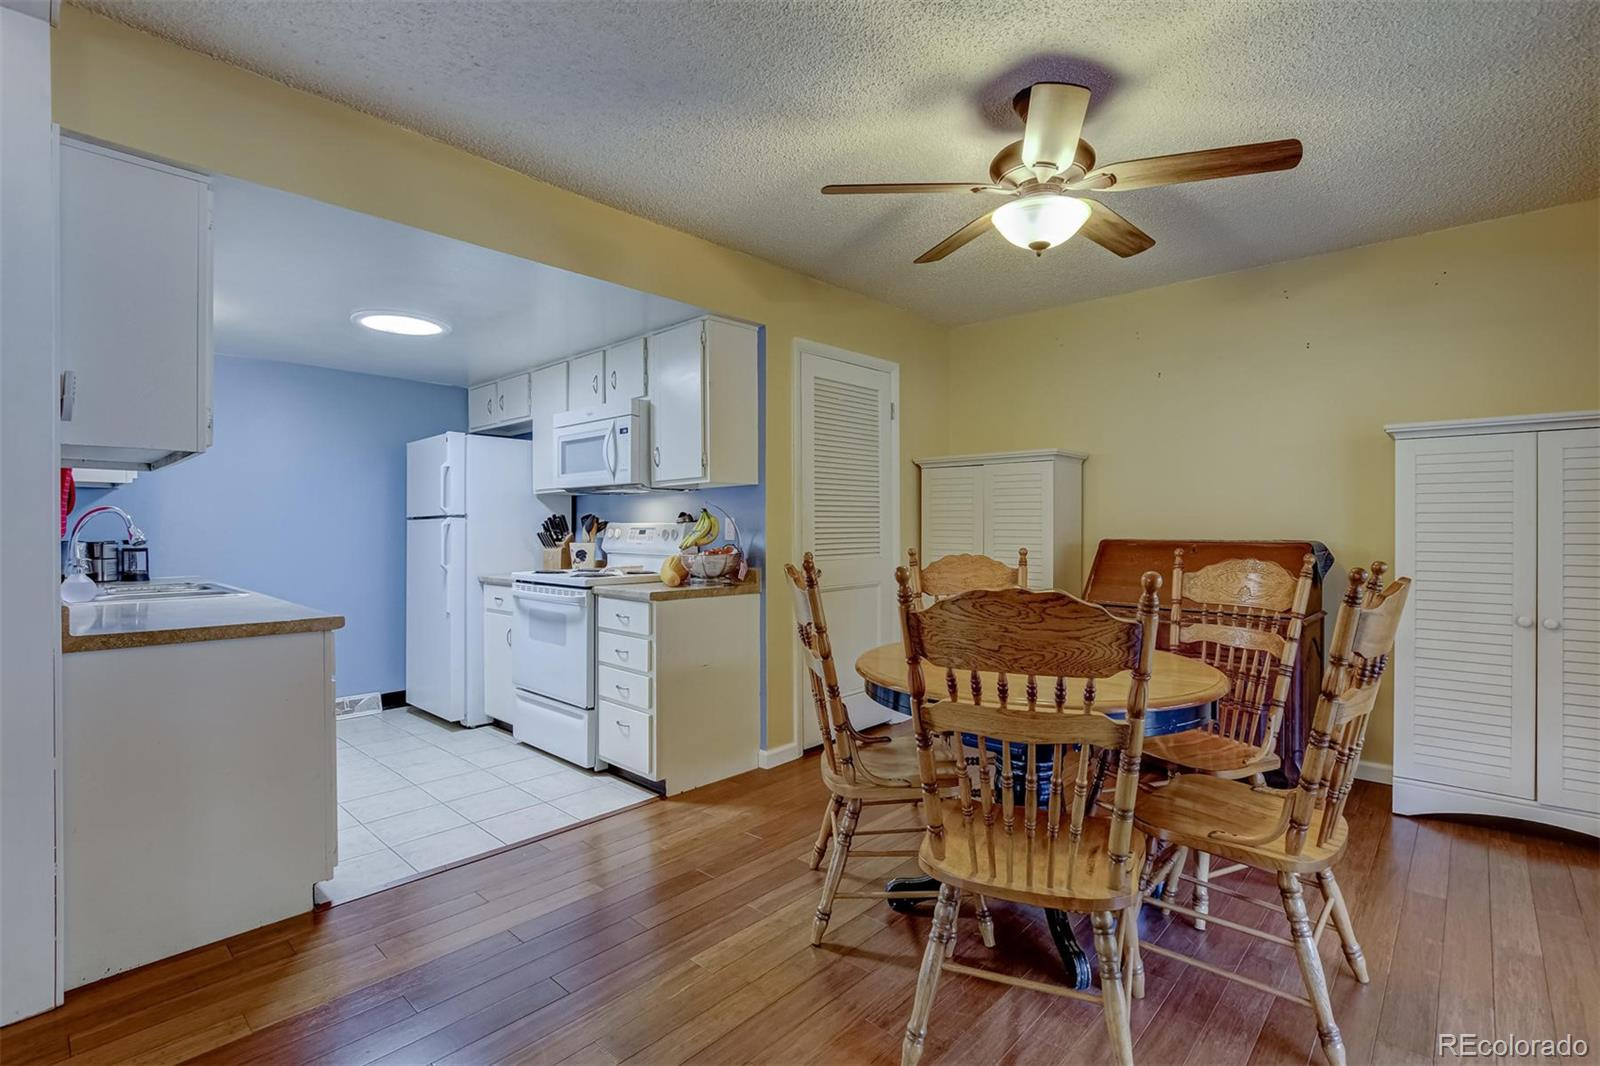 MLS# 7587510 - 11 - 14576 E 13th Avenue, Aurora, CO 80011